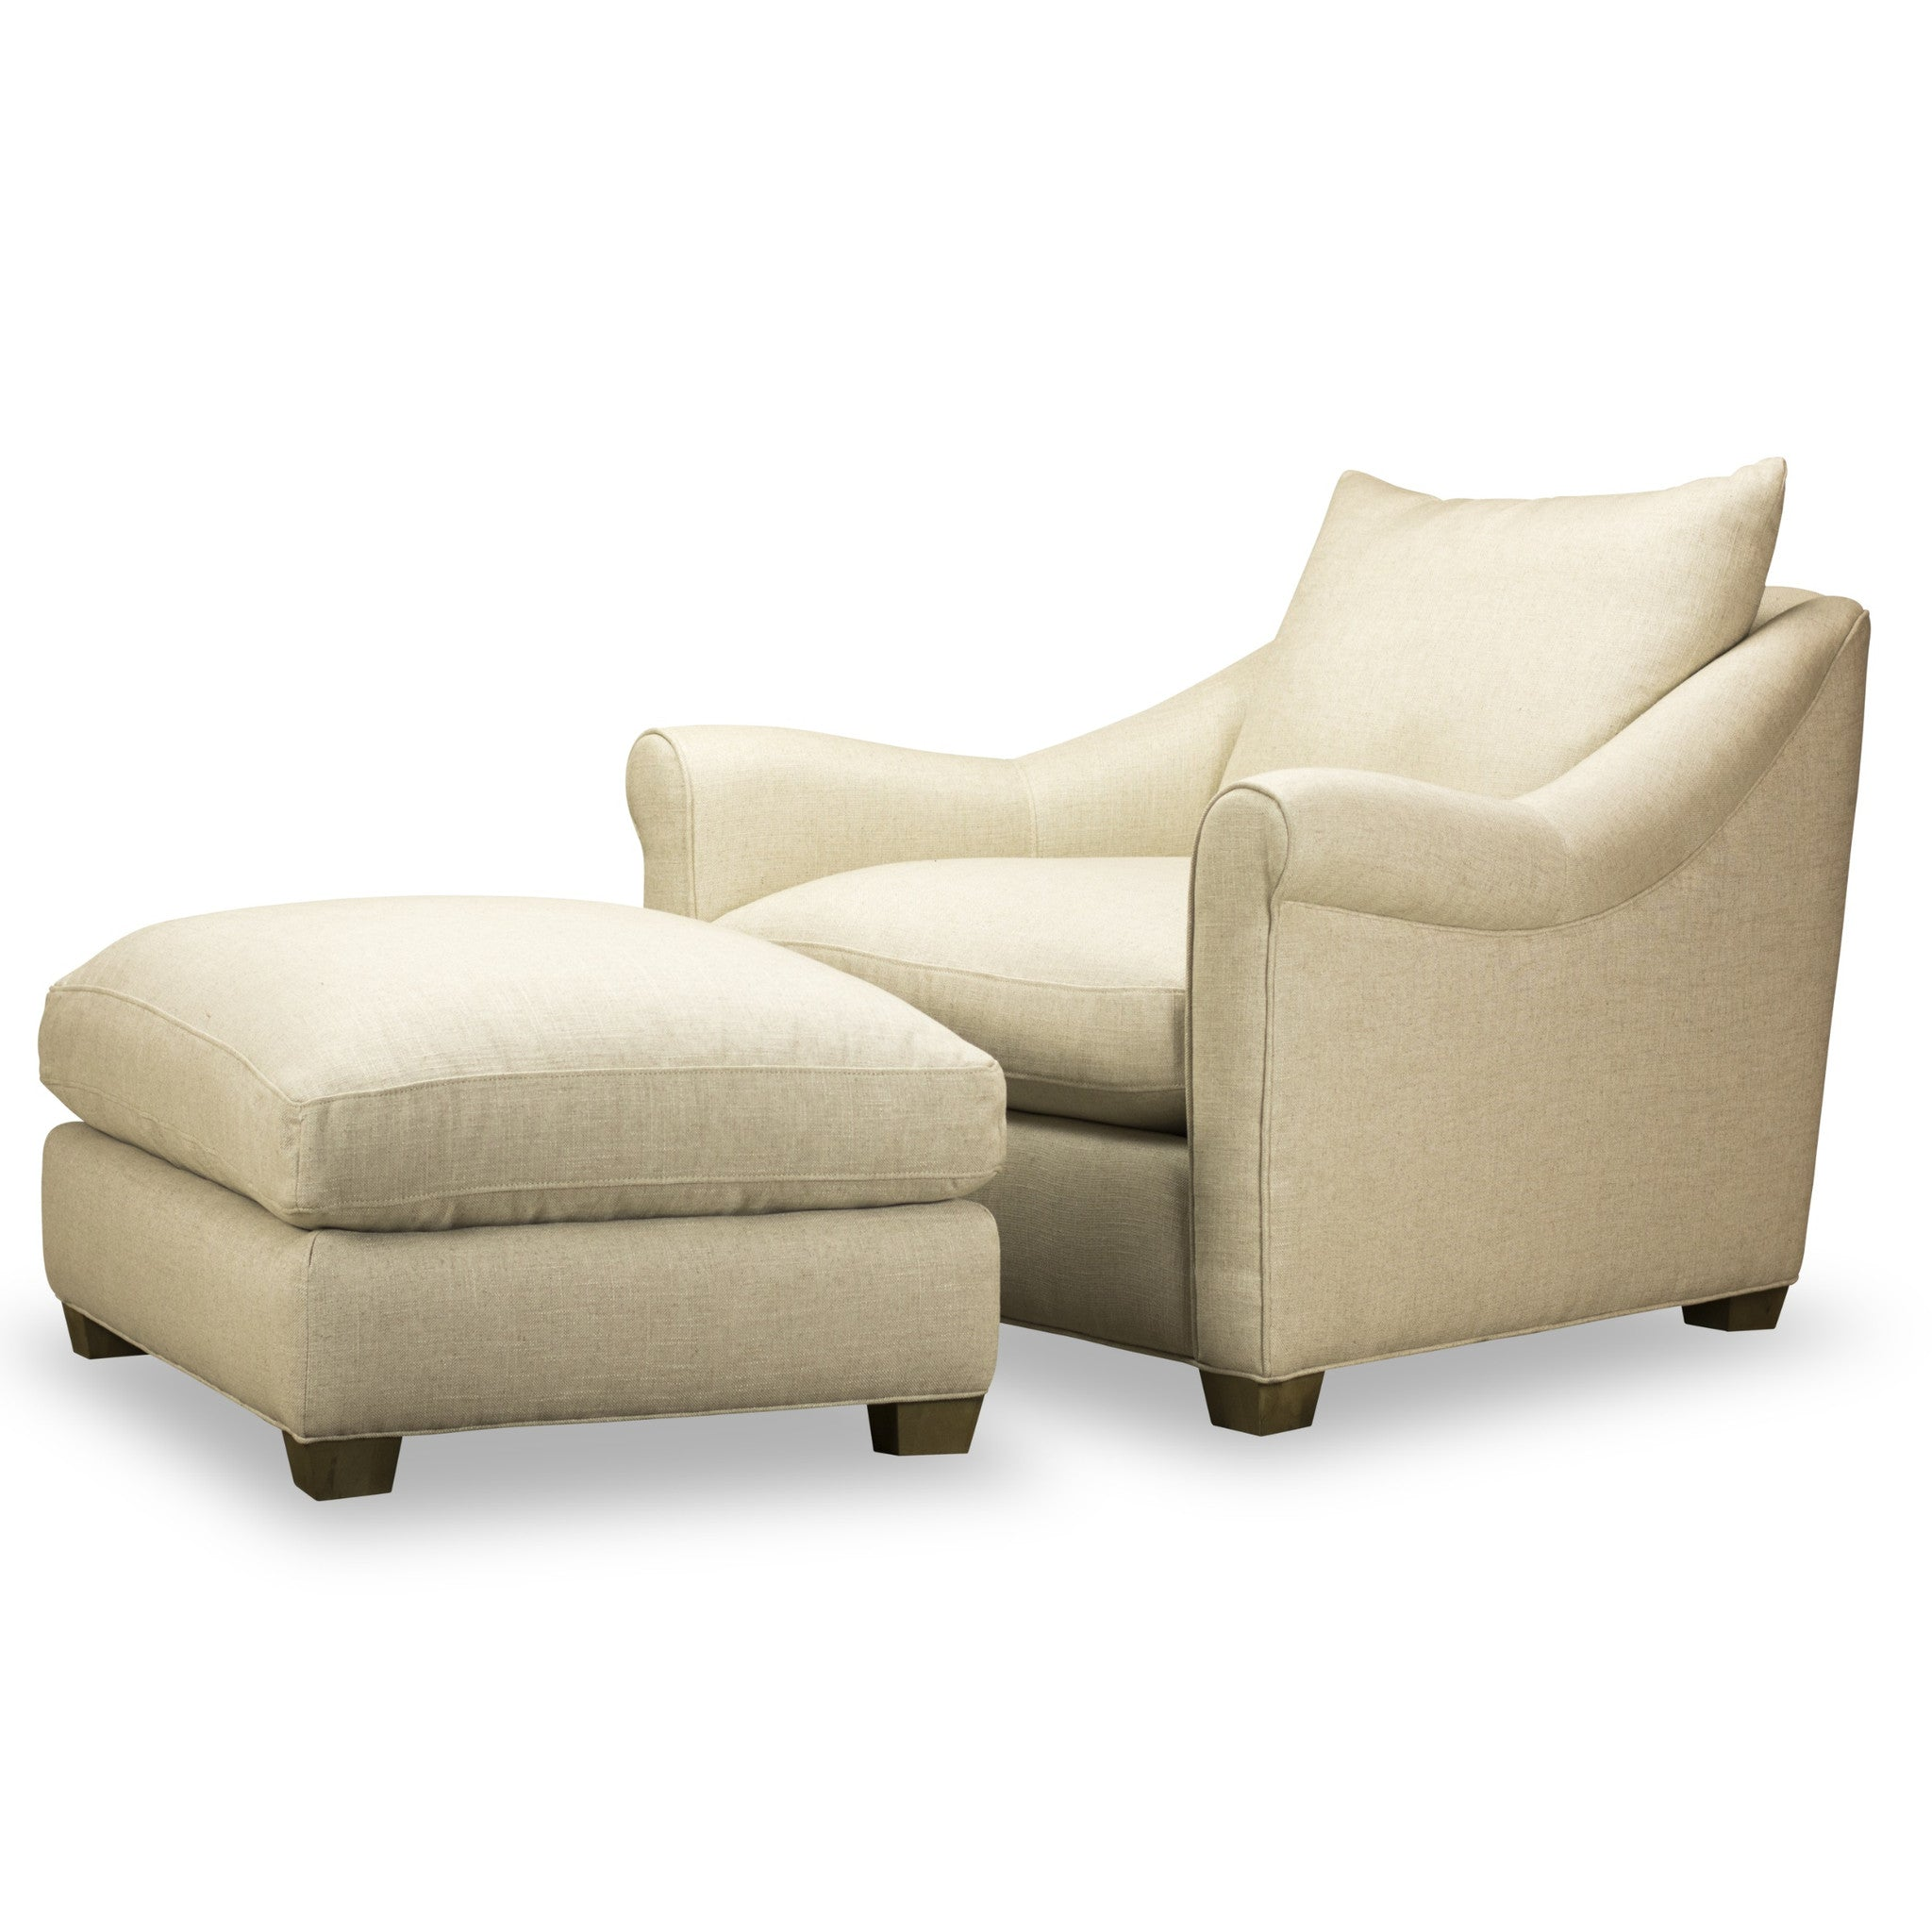 ... Celeste Chair   Ottoman   Nat Ecru